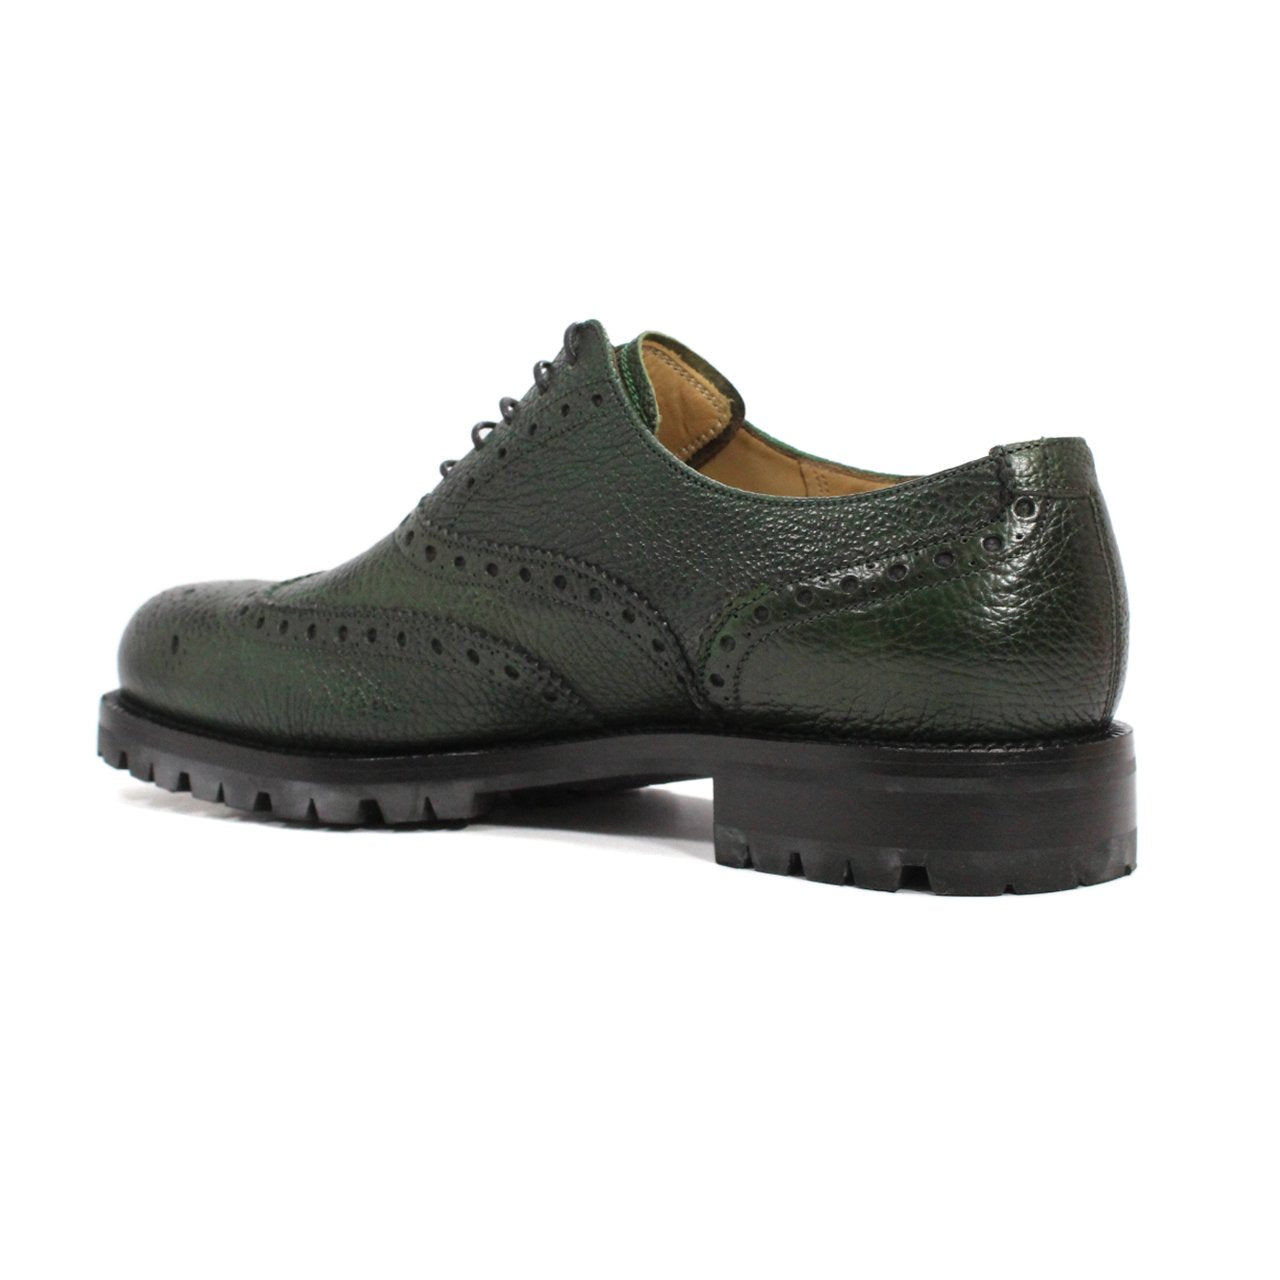 Bally Bindy Full-Brogue Men's Haindpainted Oxford 	Army Green Shoes